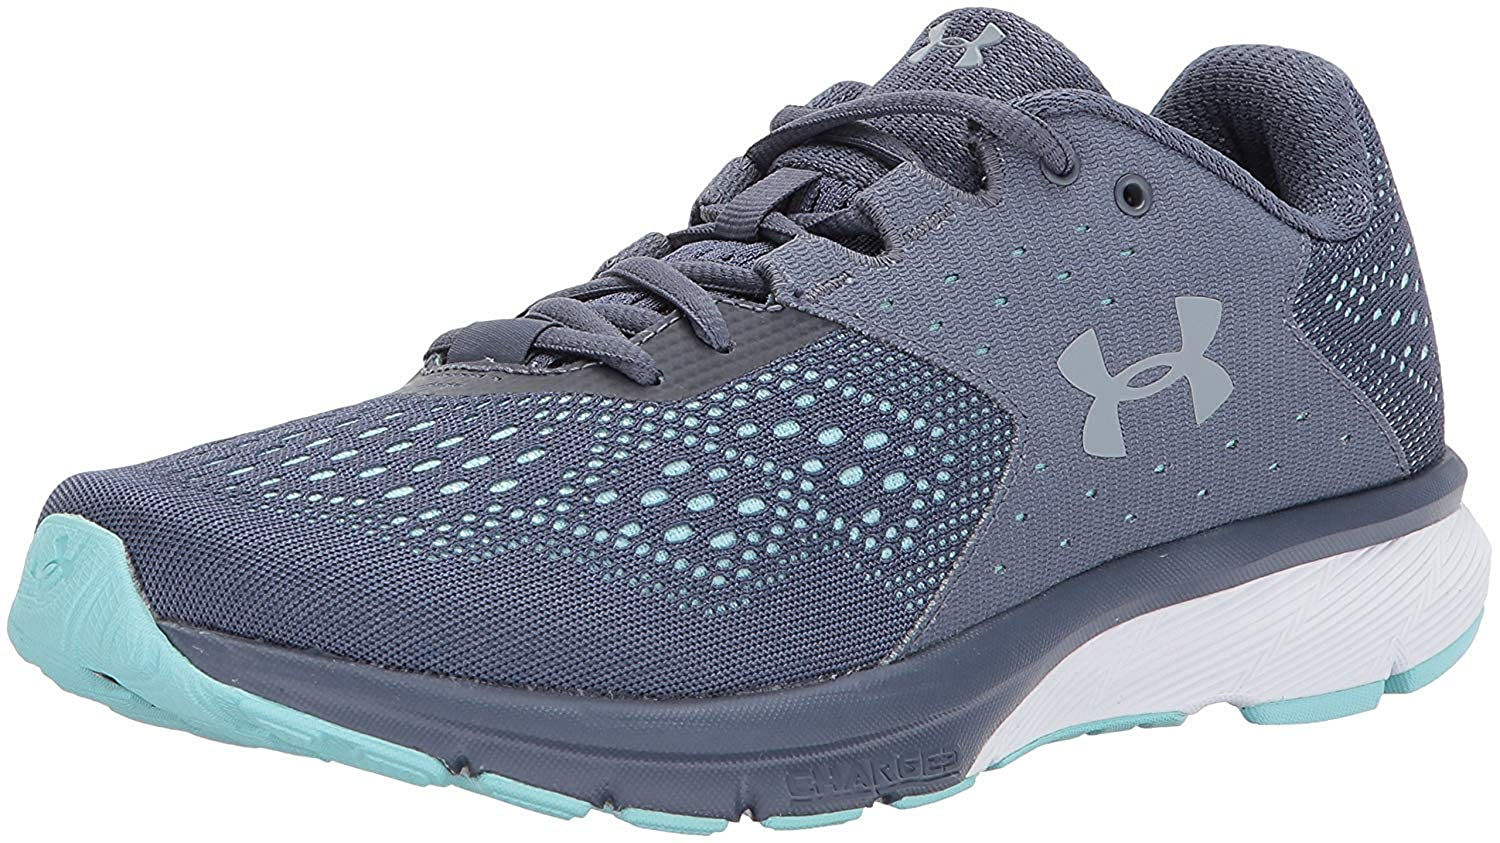 Under Armour W Charged Rebel 1298670-10, Zapatillas de Entrenamiento para Mujer: Amazon.es: Zapatos y complementos